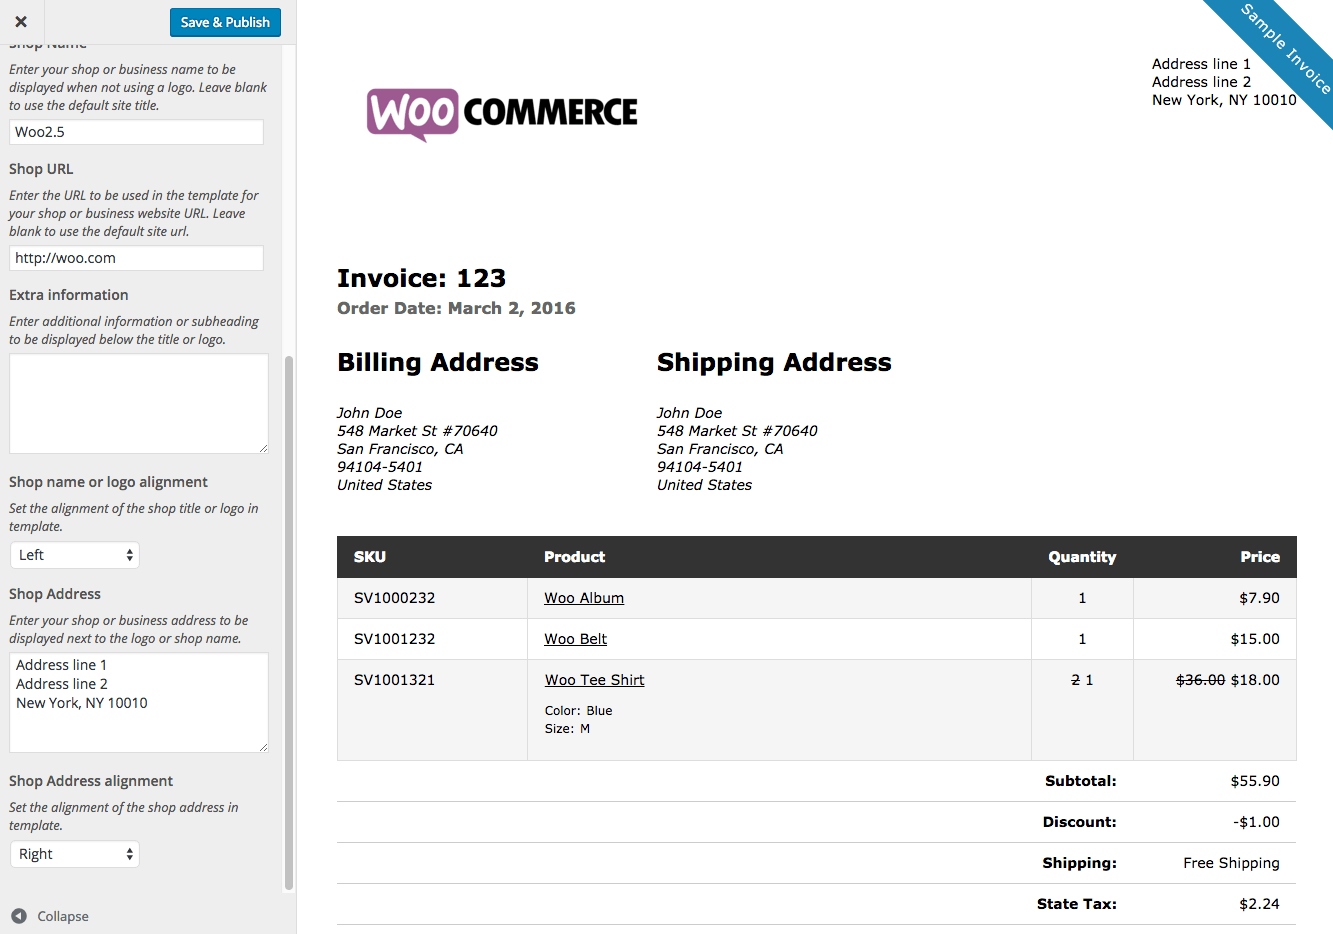 Usdgus  Marvellous Print Invoices Amp Packing Lists  Woocommerce With Inspiring Woocommerce Print Invoices  Packing Lists Customizer With Astonishing Sample Receipt For Rent Also Federal Tax Receipt In Addition Legal Receipt Of Payment And Gross Receipt Definition As Well As Virginia Gross Receipts Tax Additionally Free Receipts Templates From Woocommercecom With Usdgus  Inspiring Print Invoices Amp Packing Lists  Woocommerce With Astonishing Woocommerce Print Invoices  Packing Lists Customizer And Marvellous Sample Receipt For Rent Also Federal Tax Receipt In Addition Legal Receipt Of Payment From Woocommercecom